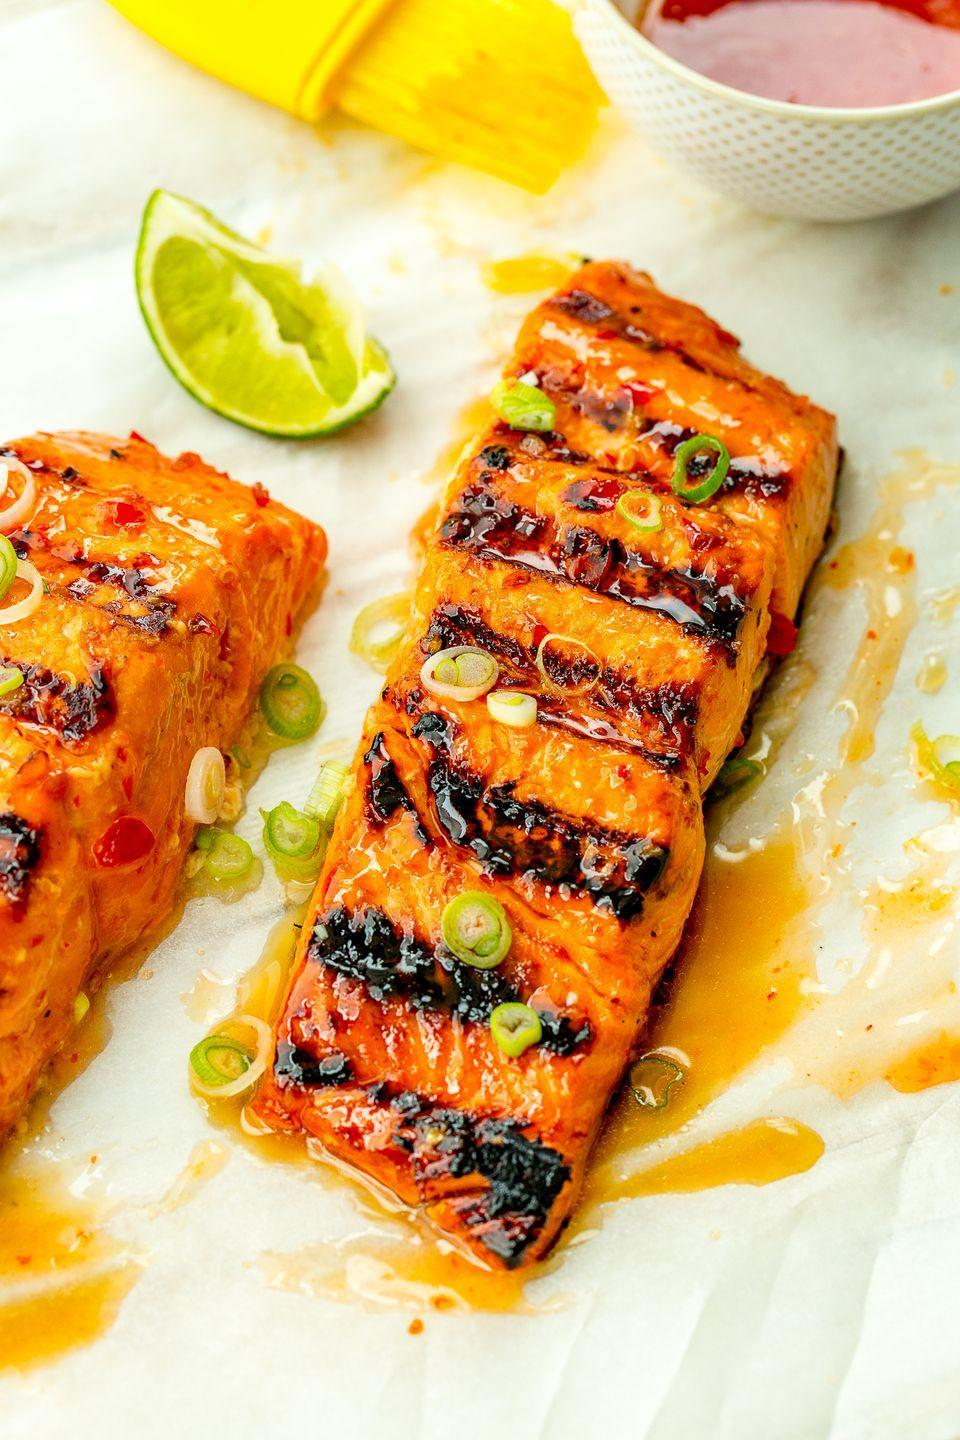 "<p>Amp up your grill game with this zesty glazed salmon.</p><p>Get the recipe from <a href=""https://www.delish.com/cooking/recipe-ideas/recipes/a47374/sweet-chili-lime-grilled-salmon-recipe/"" rel=""nofollow noopener"" target=""_blank"" data-ylk=""slk:Delish"" class=""link rapid-noclick-resp"">Delish</a>.</p>"